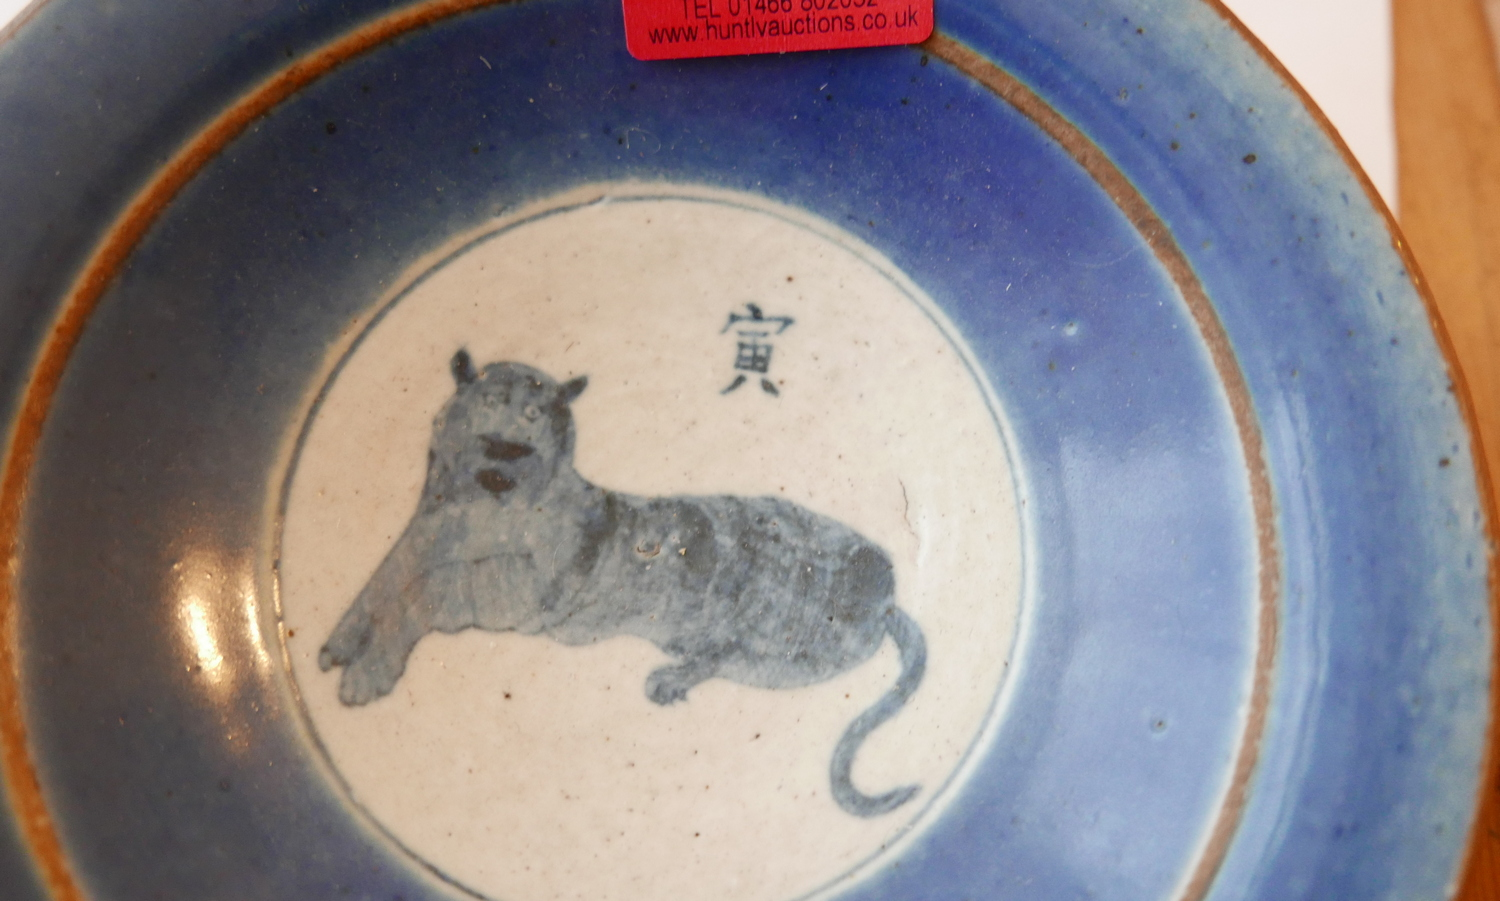 Lot 357 - Oriental Blue Coloured Bowl - 172mm diameter with central Tiger figure.